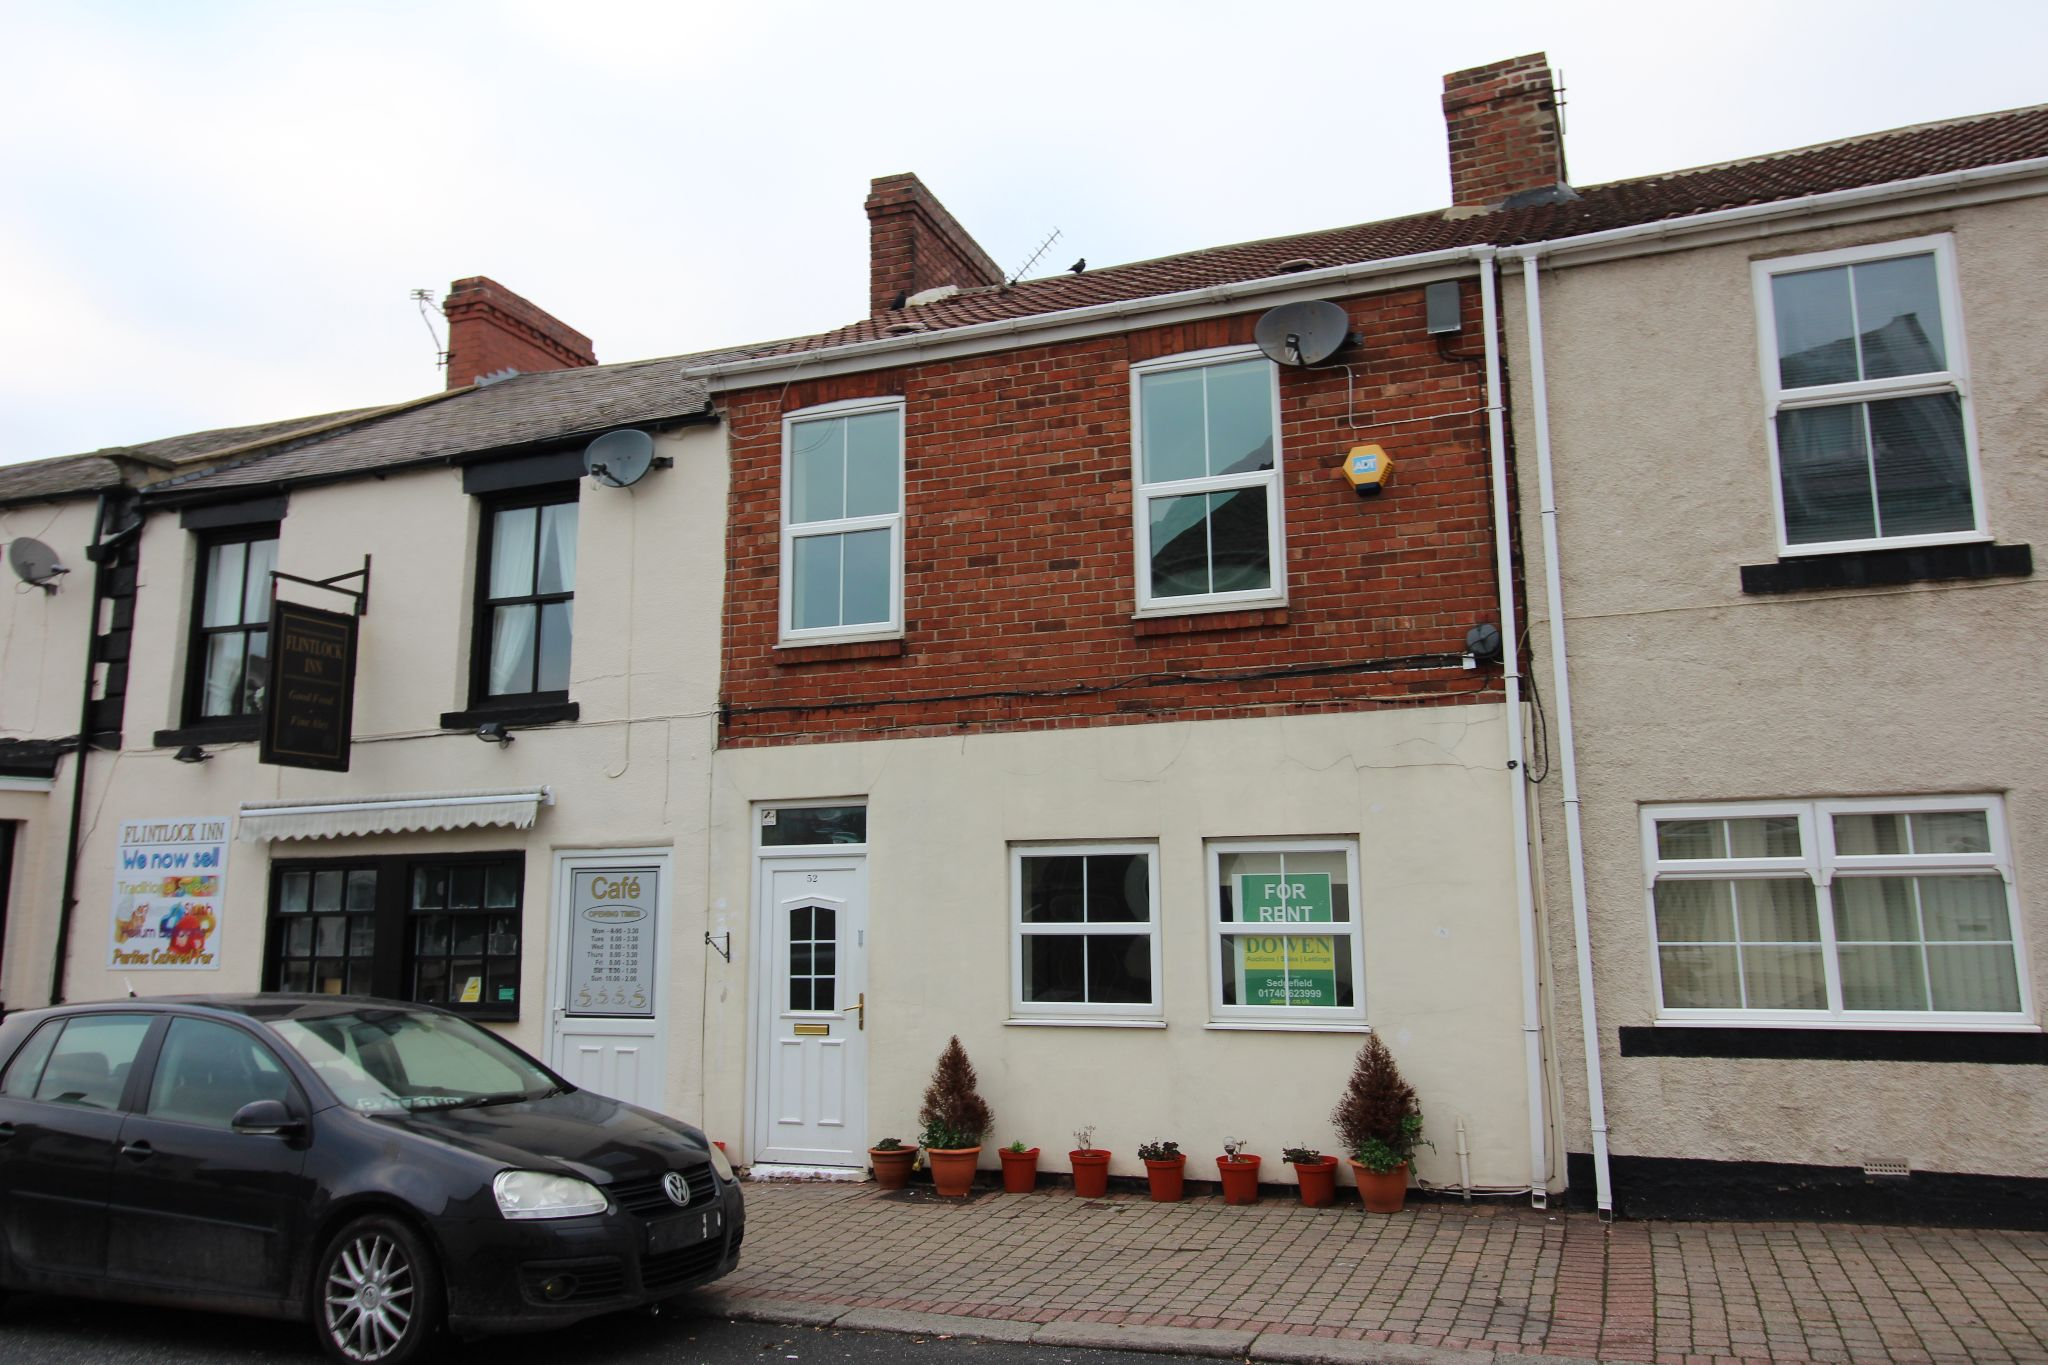 3 bedroom mid terraced house Let in West Cornforth - Photograph 1.